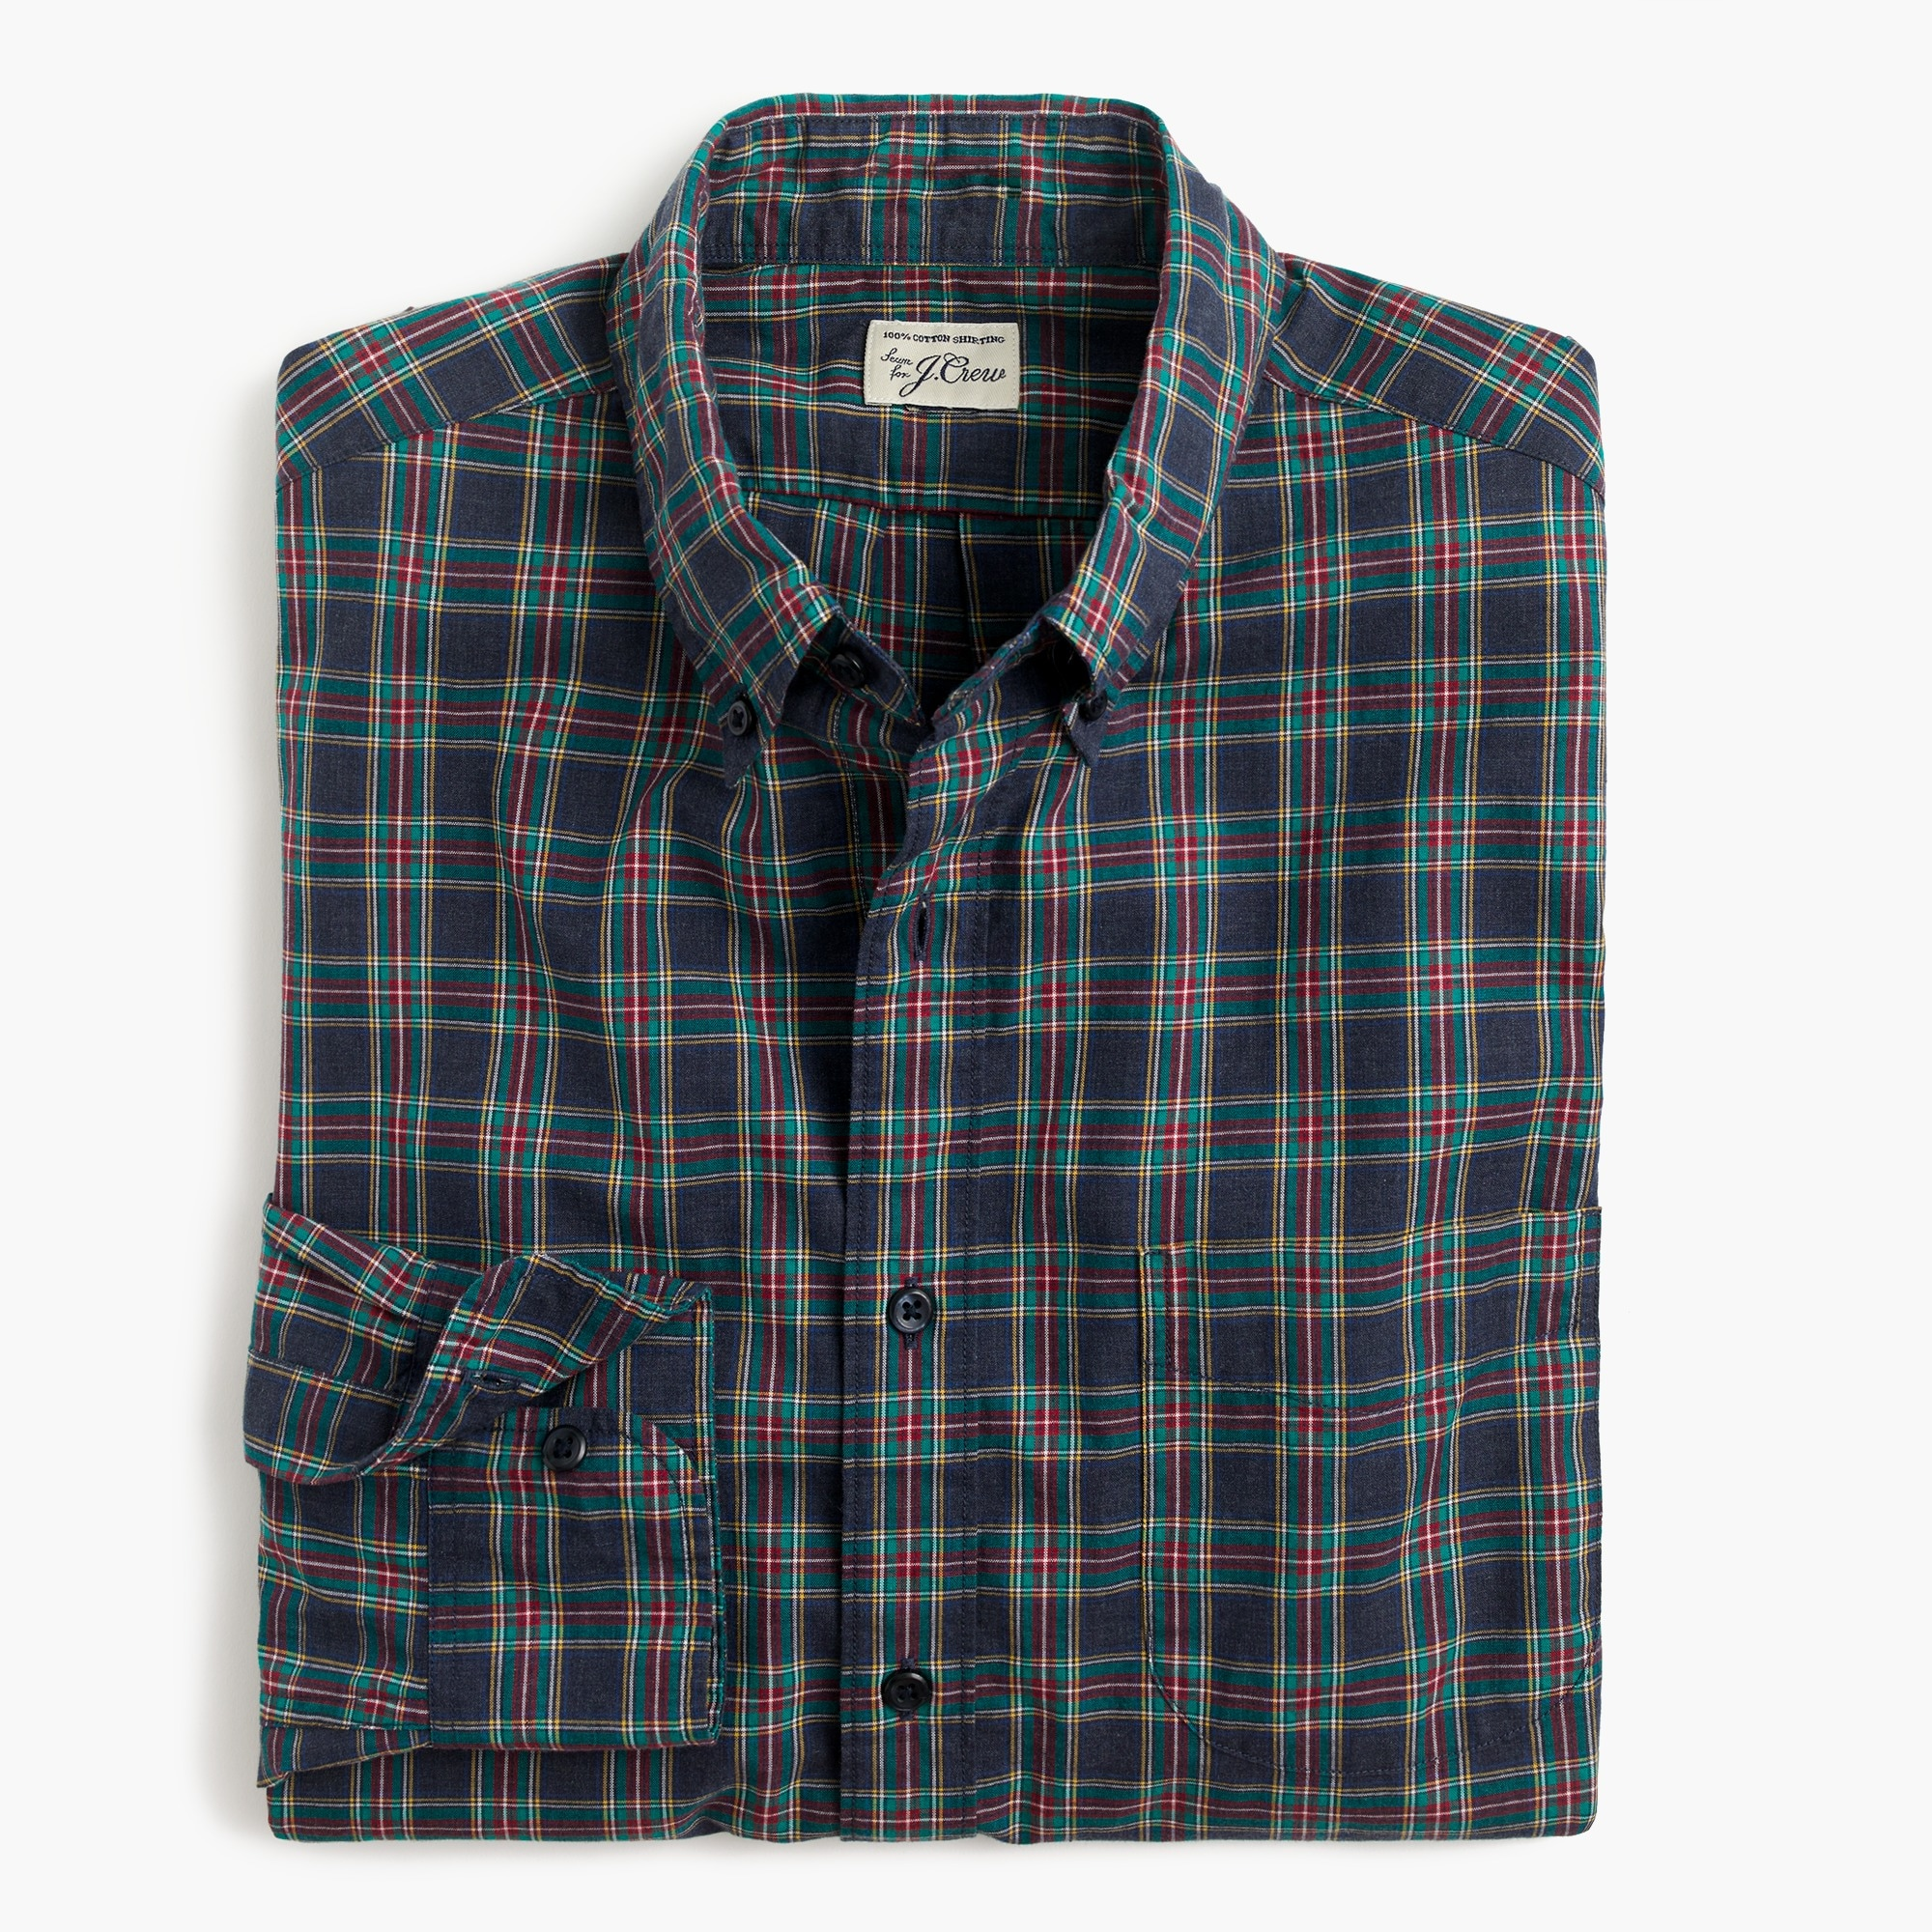 Image 3 for Slim Secret Wash shirt in heather poplin navy tartan